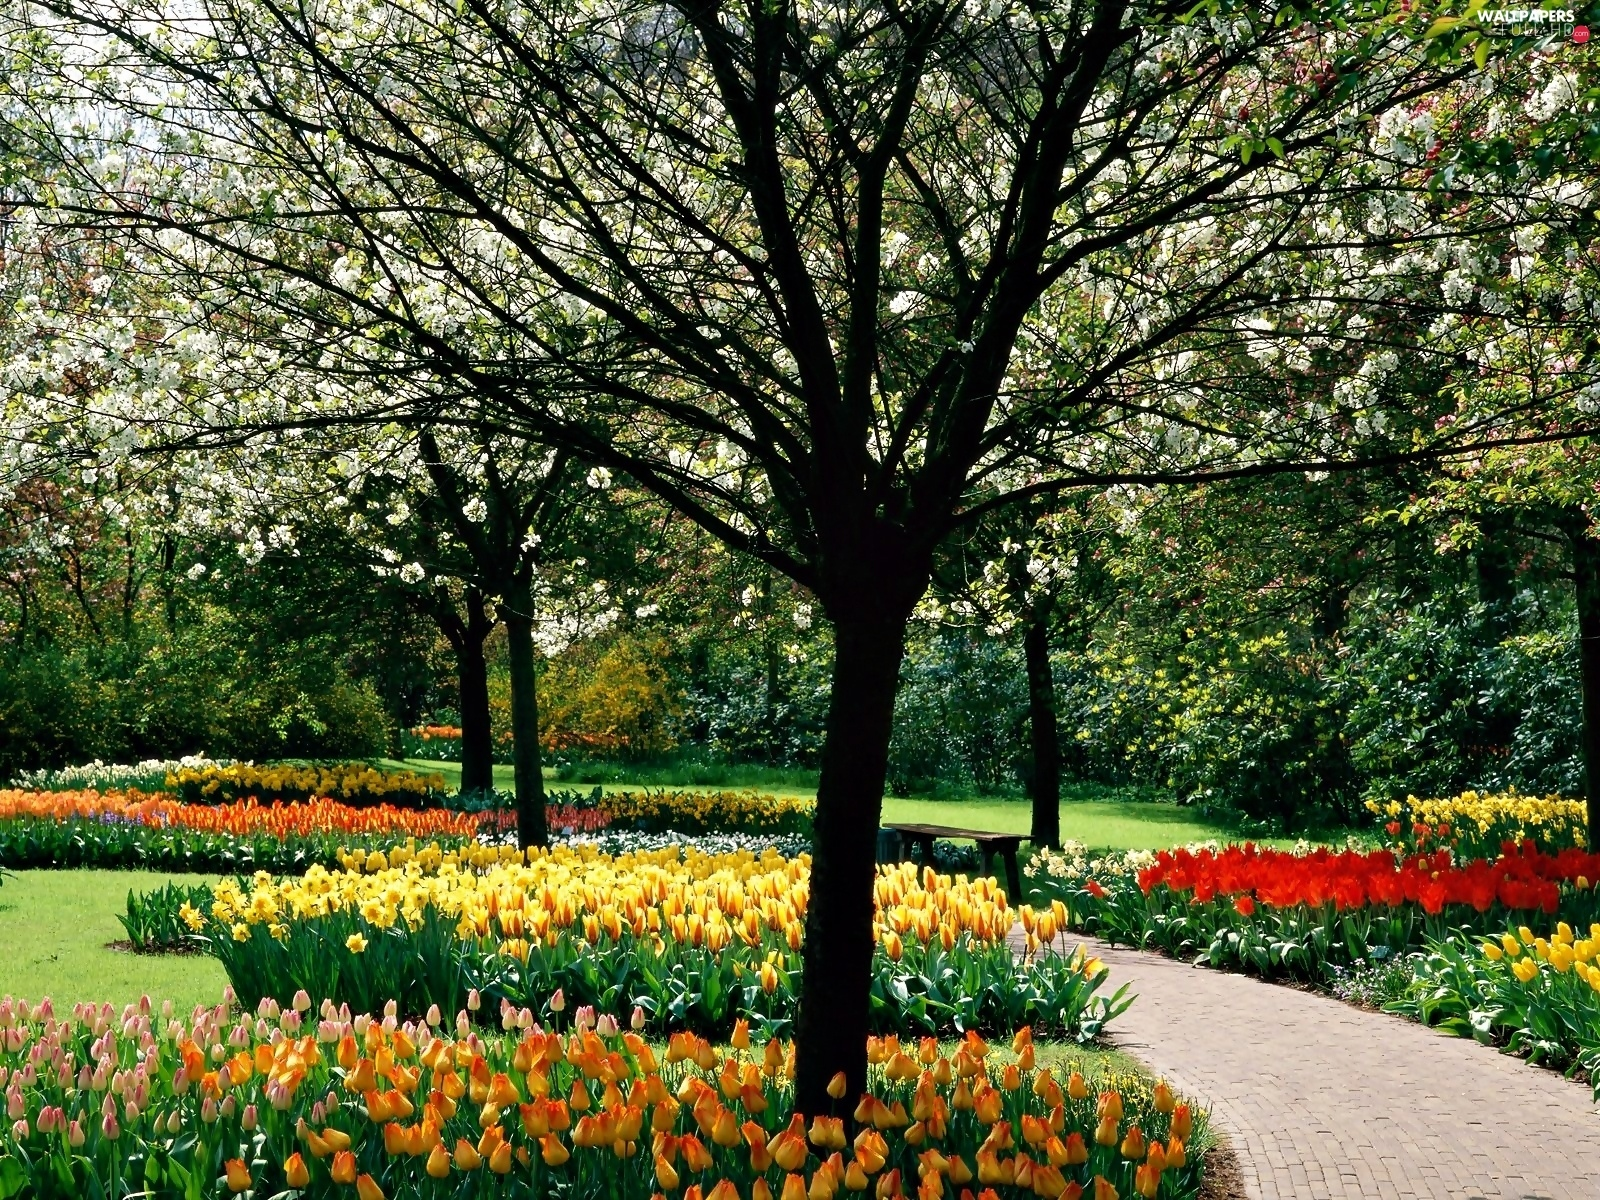 Tulips, viewes, trees, spring, color, Park, flourishing